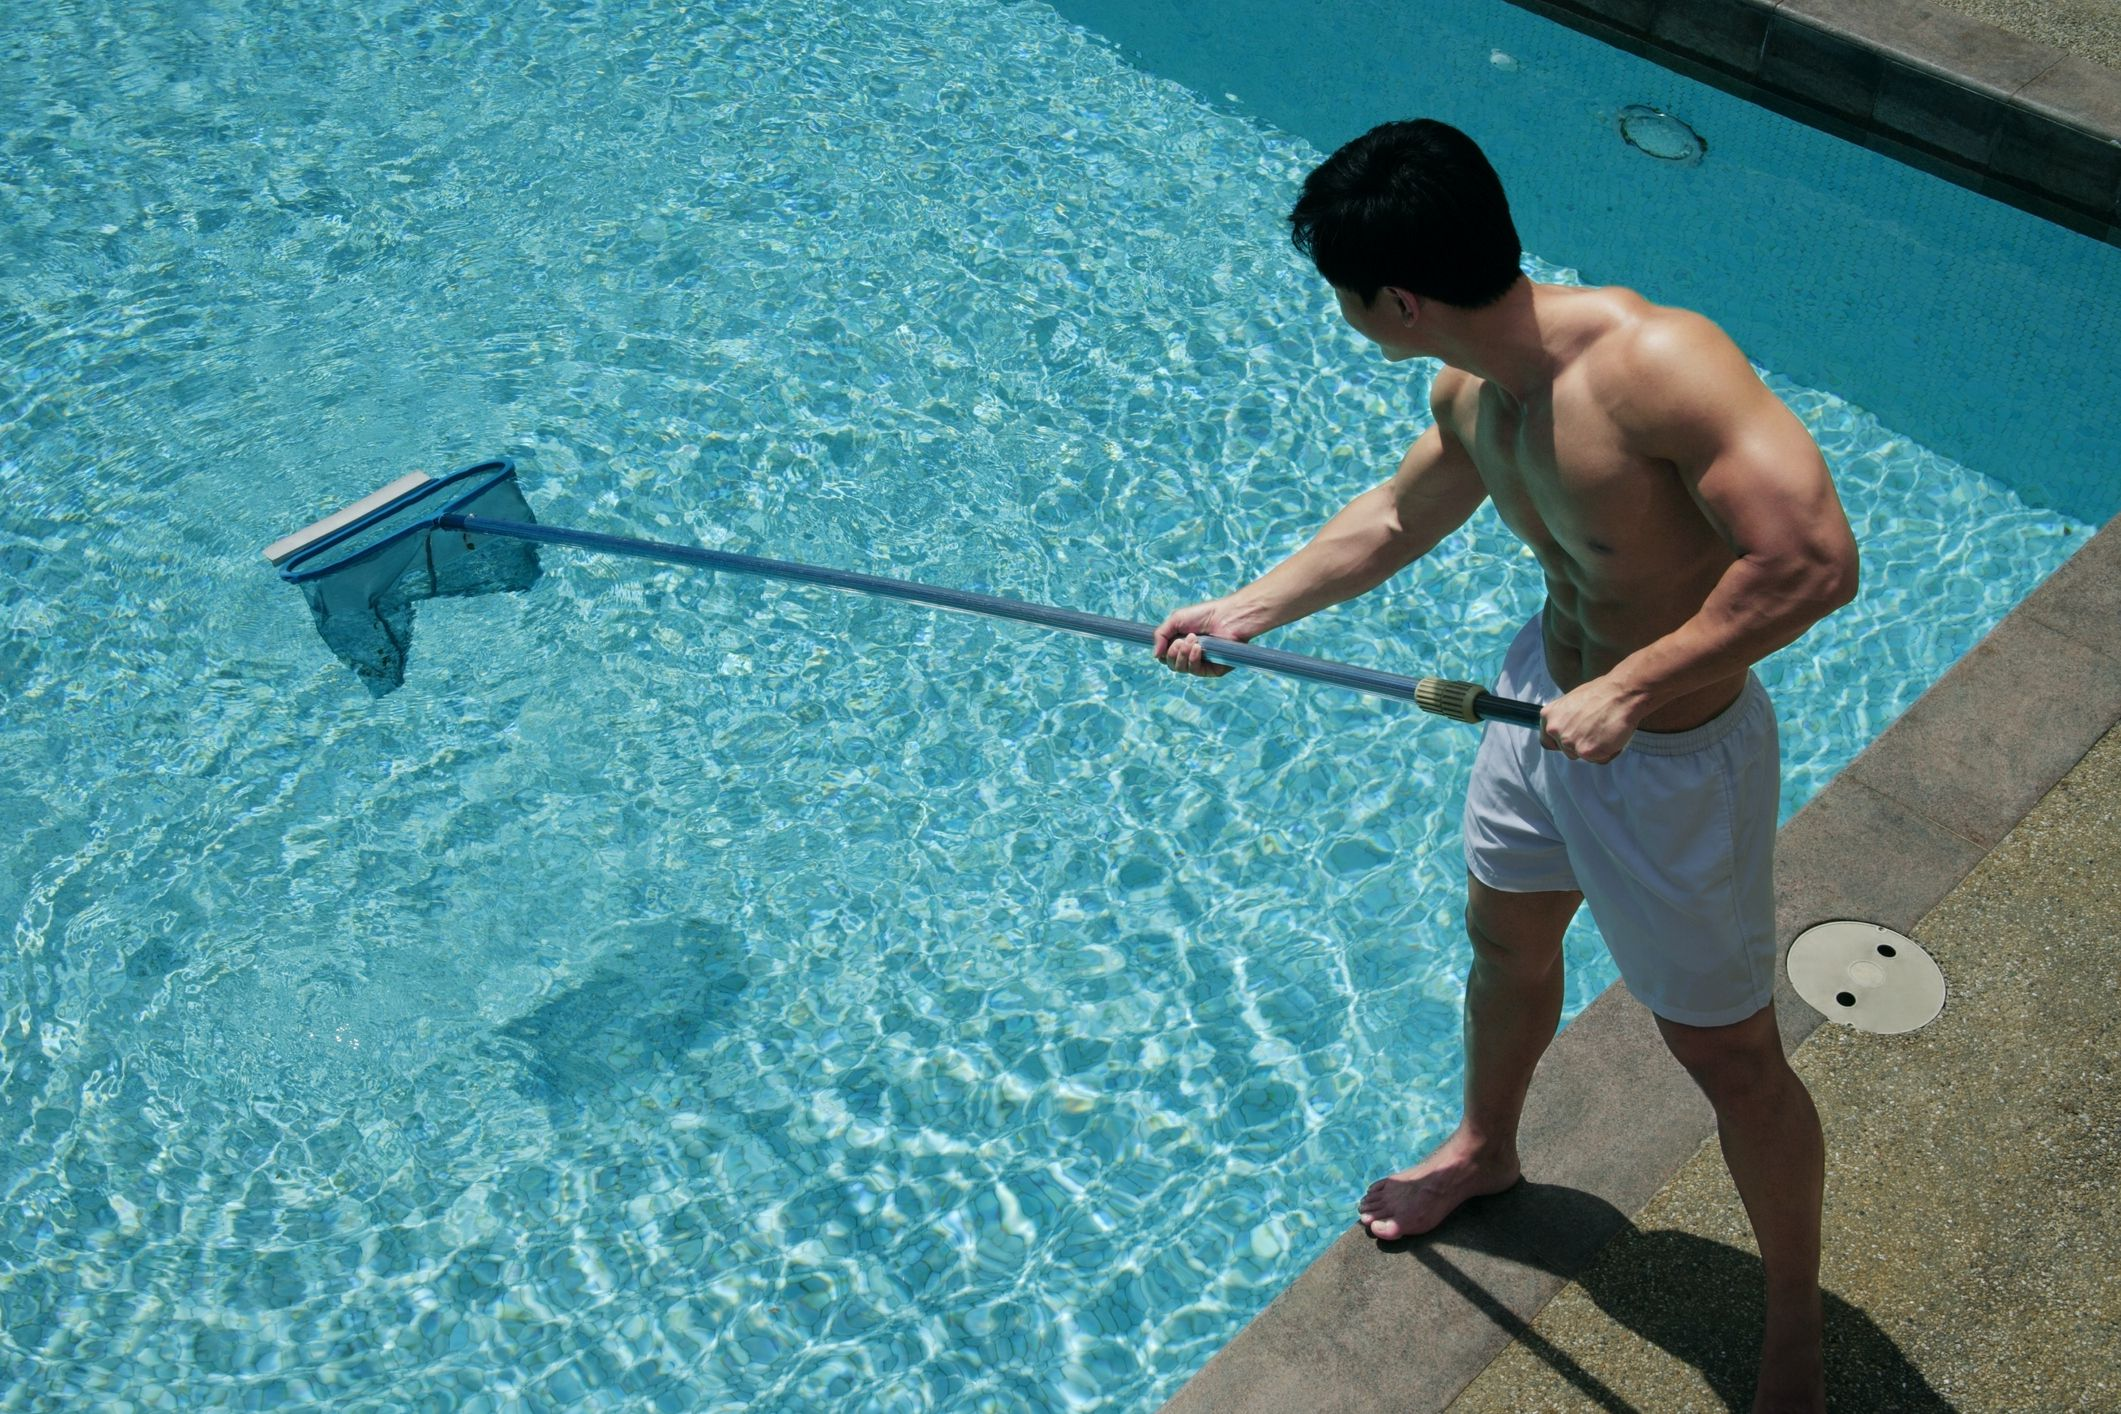 How to start a pool cleaning business How do i finance a swimming pool